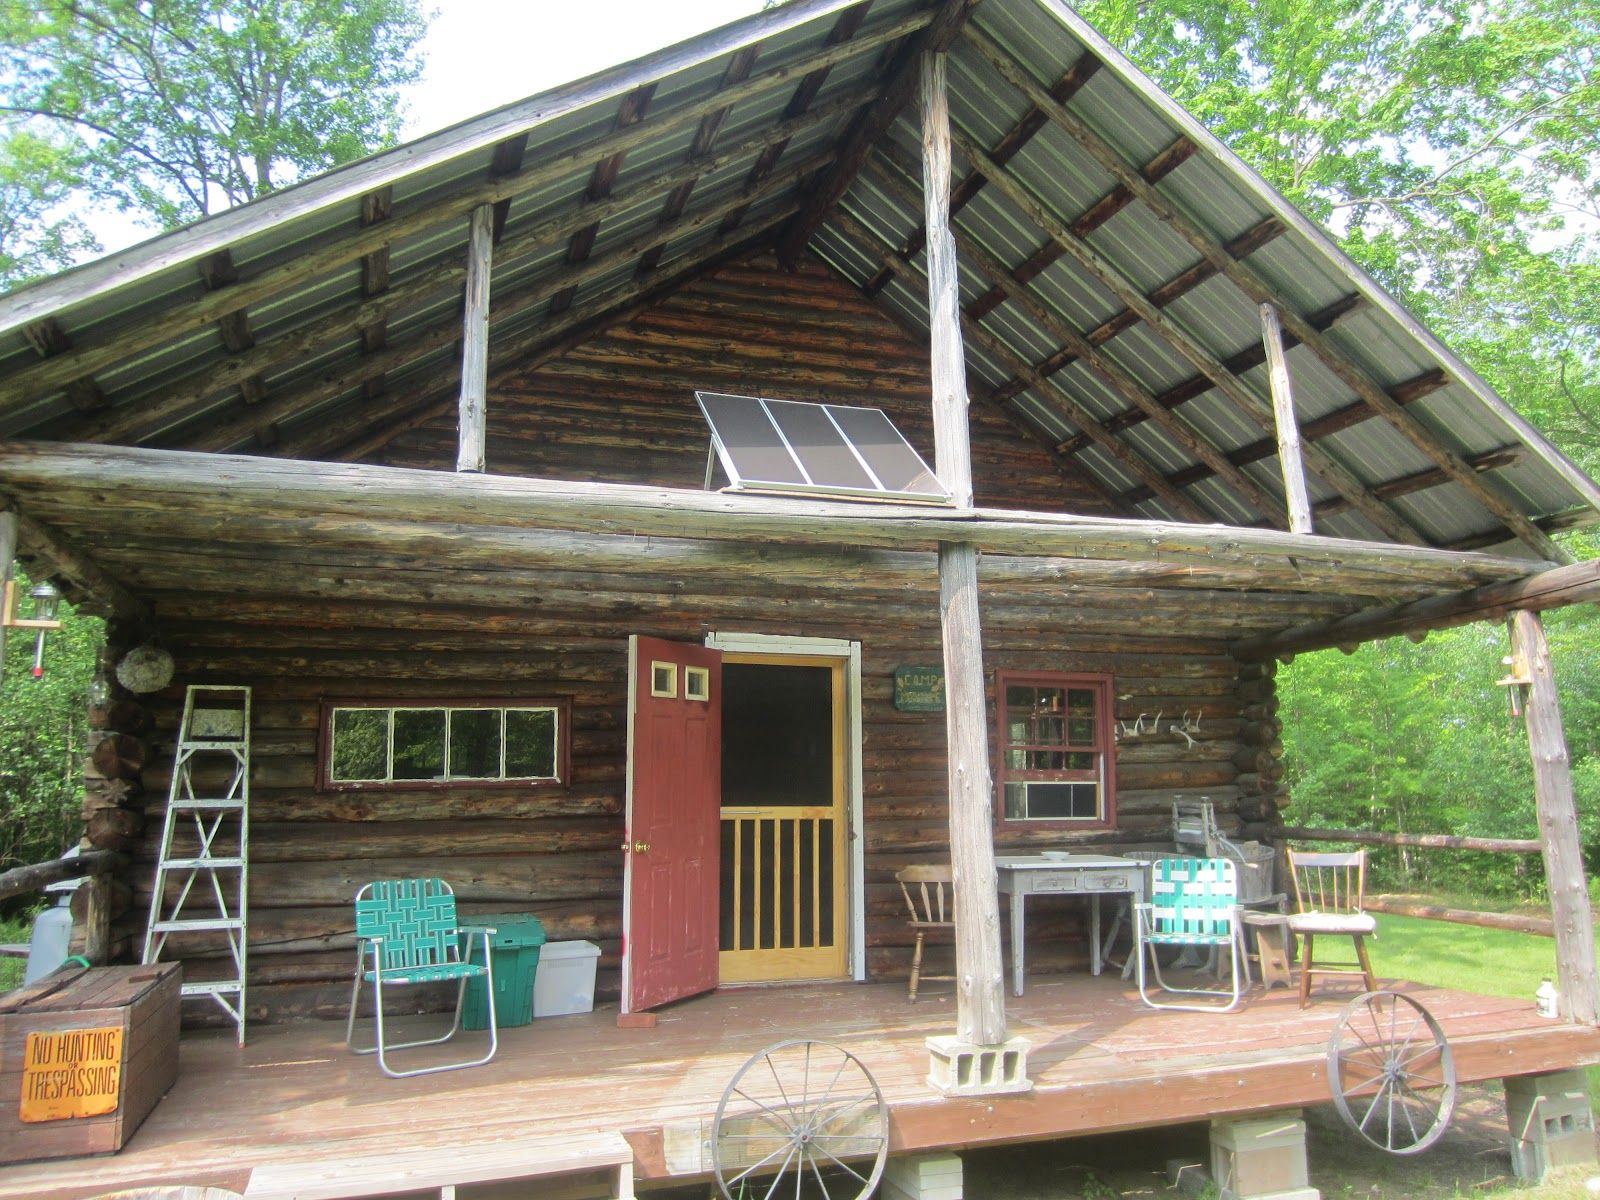 Relaxshacks.com: More scenes/cabins from Tiny House Summer Camp in ...